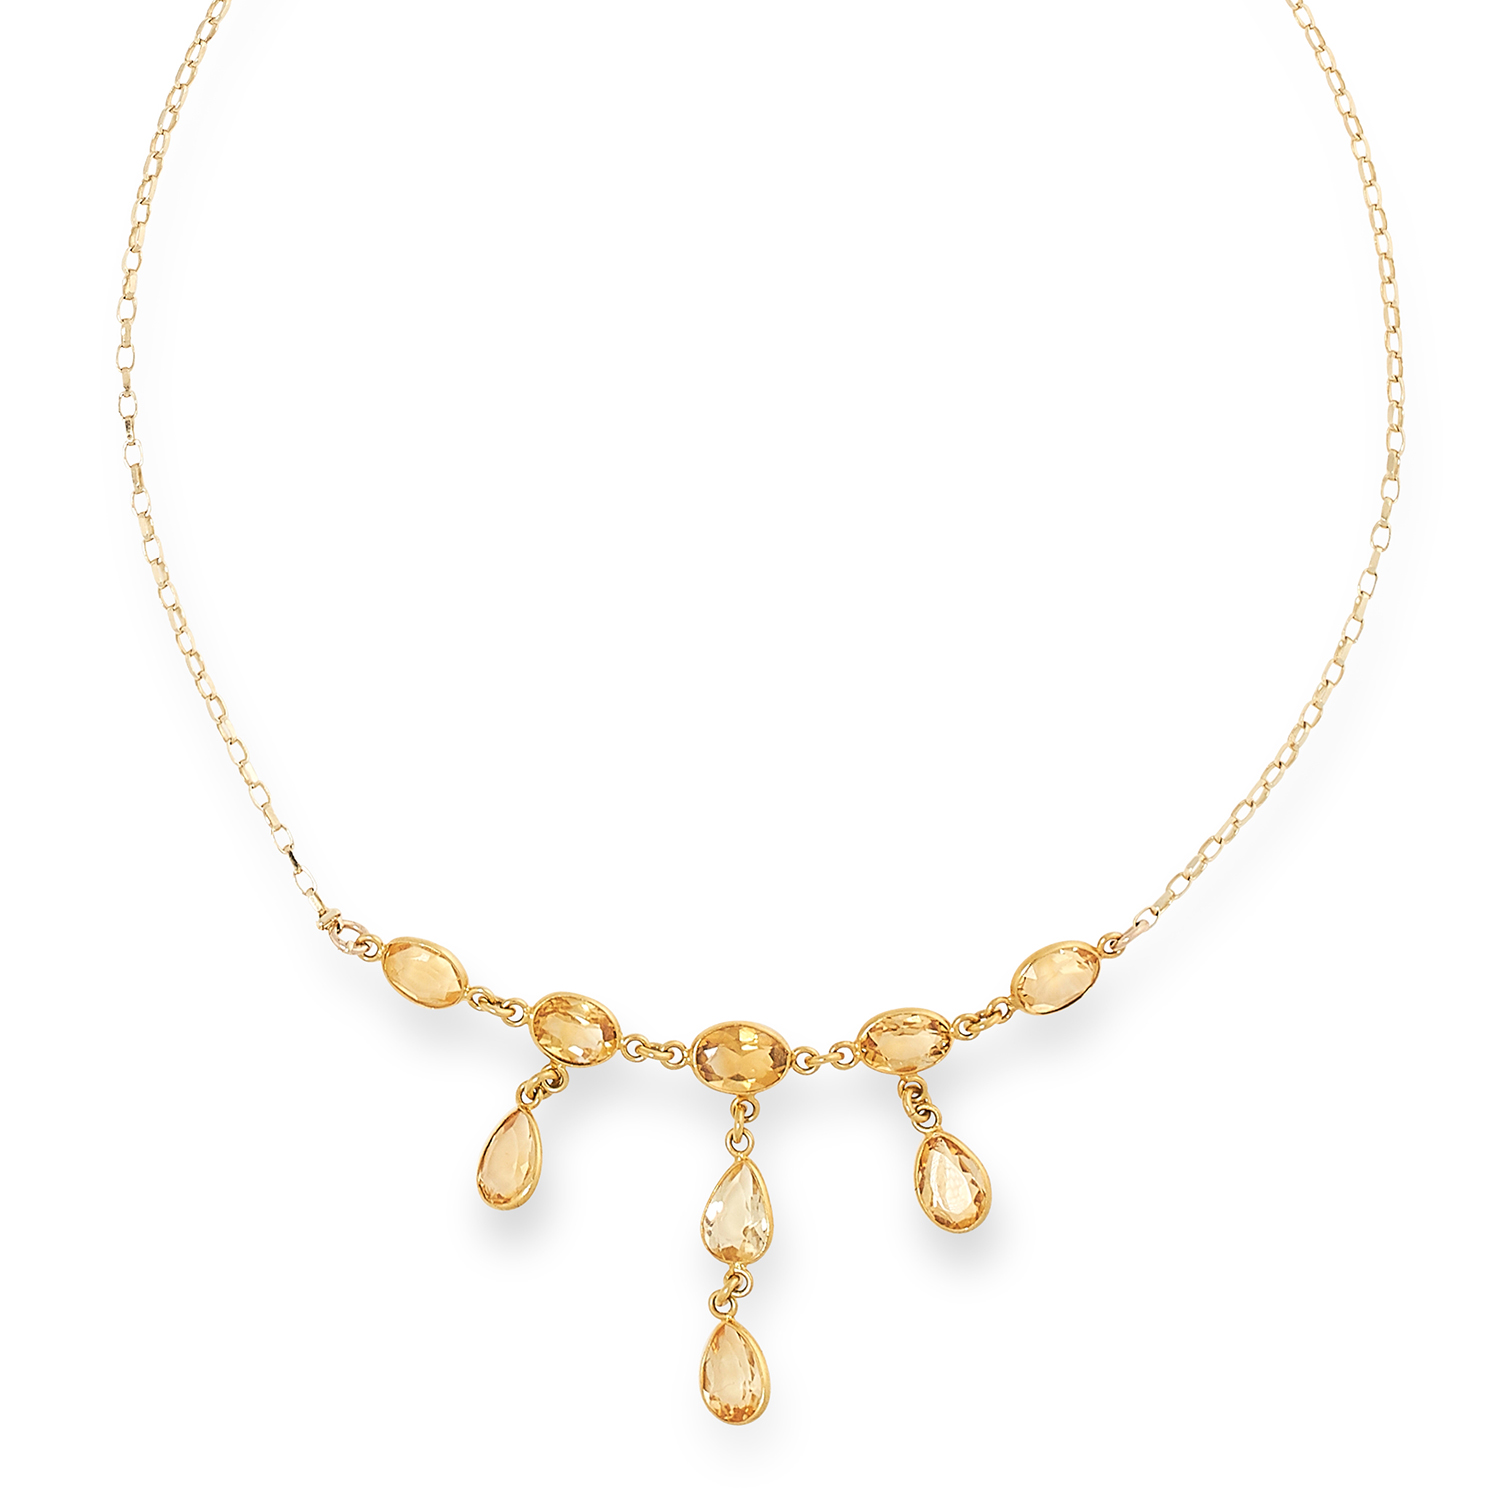 CITRINE NECKLACE on a fine link chain suspending oval and pear cut citrines, 46cm, 4g.